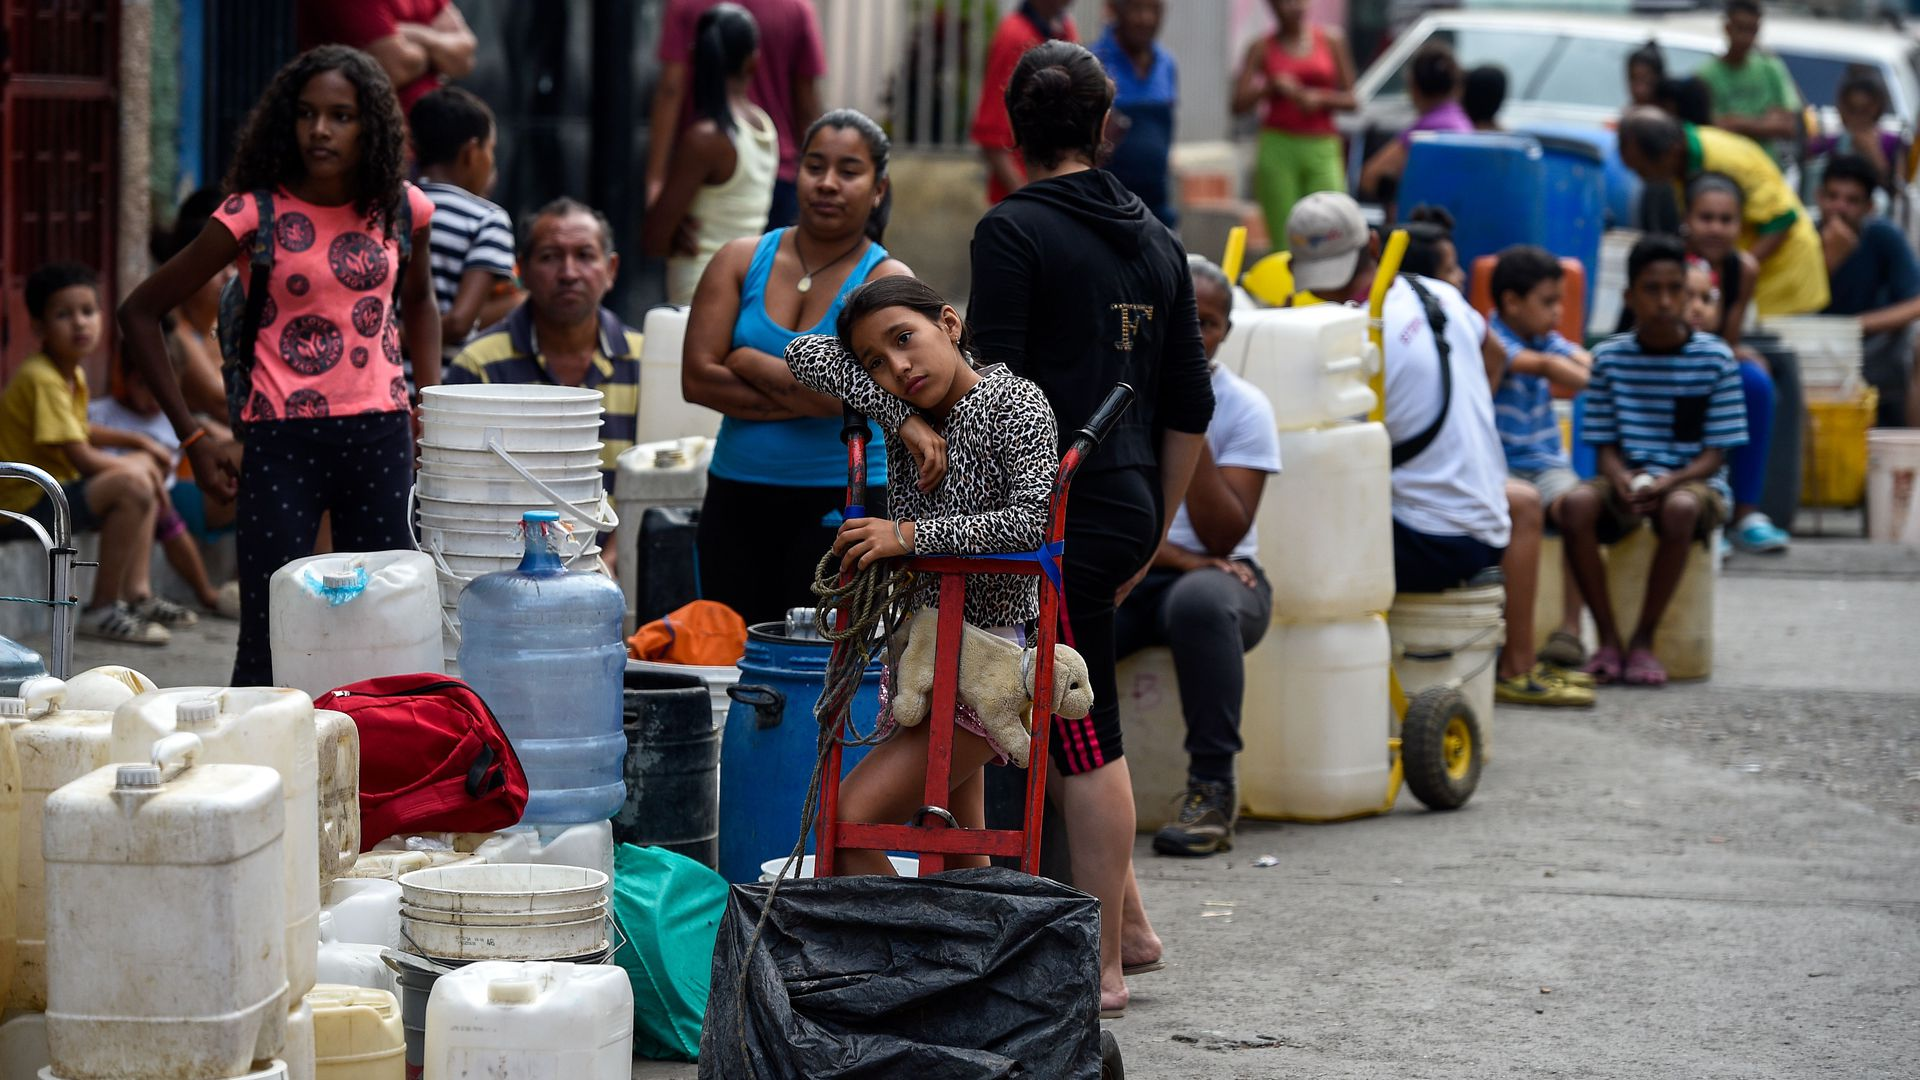 People line up with cans and tanks to collect water, at Petare neighborhood in Caracas